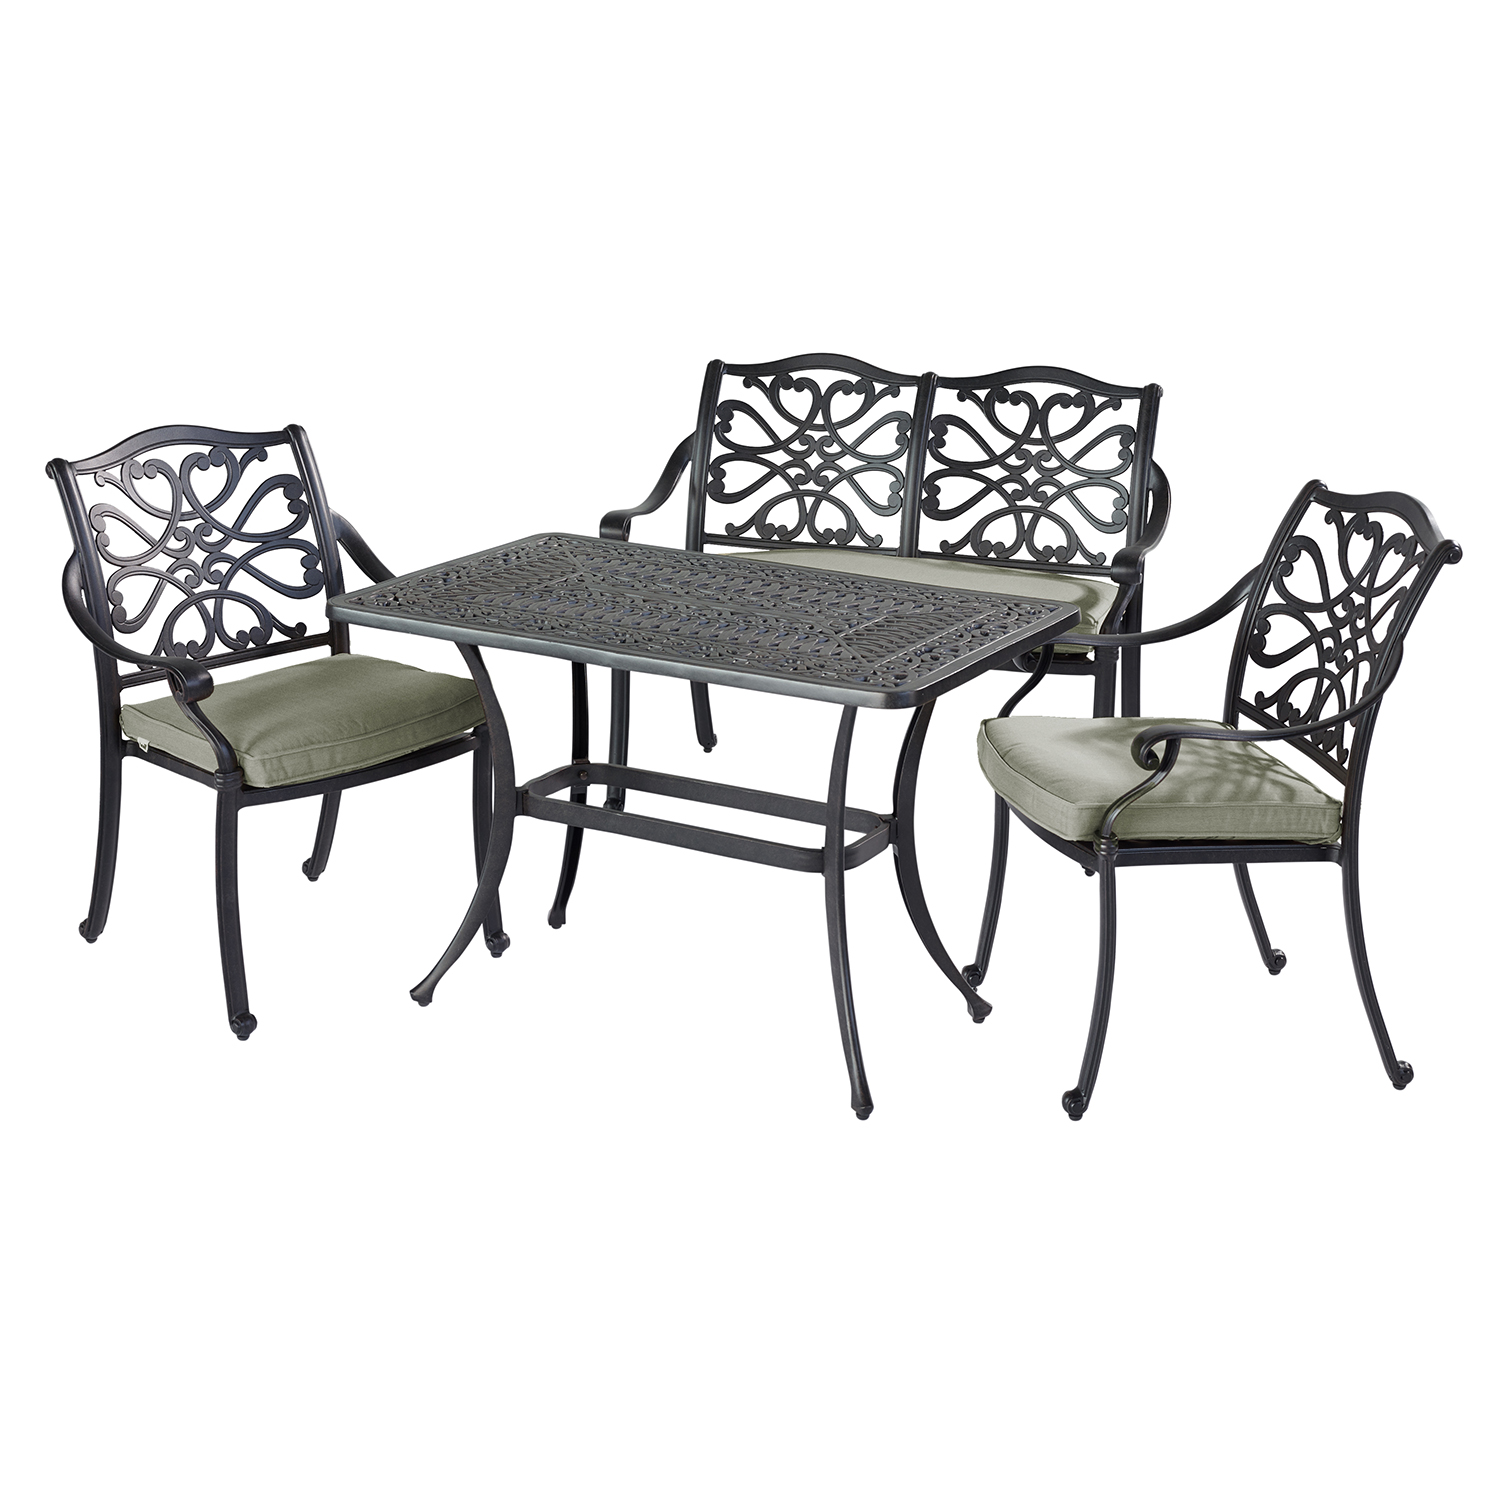 hartman amalfi 4 seater outdoor set. Black Bedroom Furniture Sets. Home Design Ideas